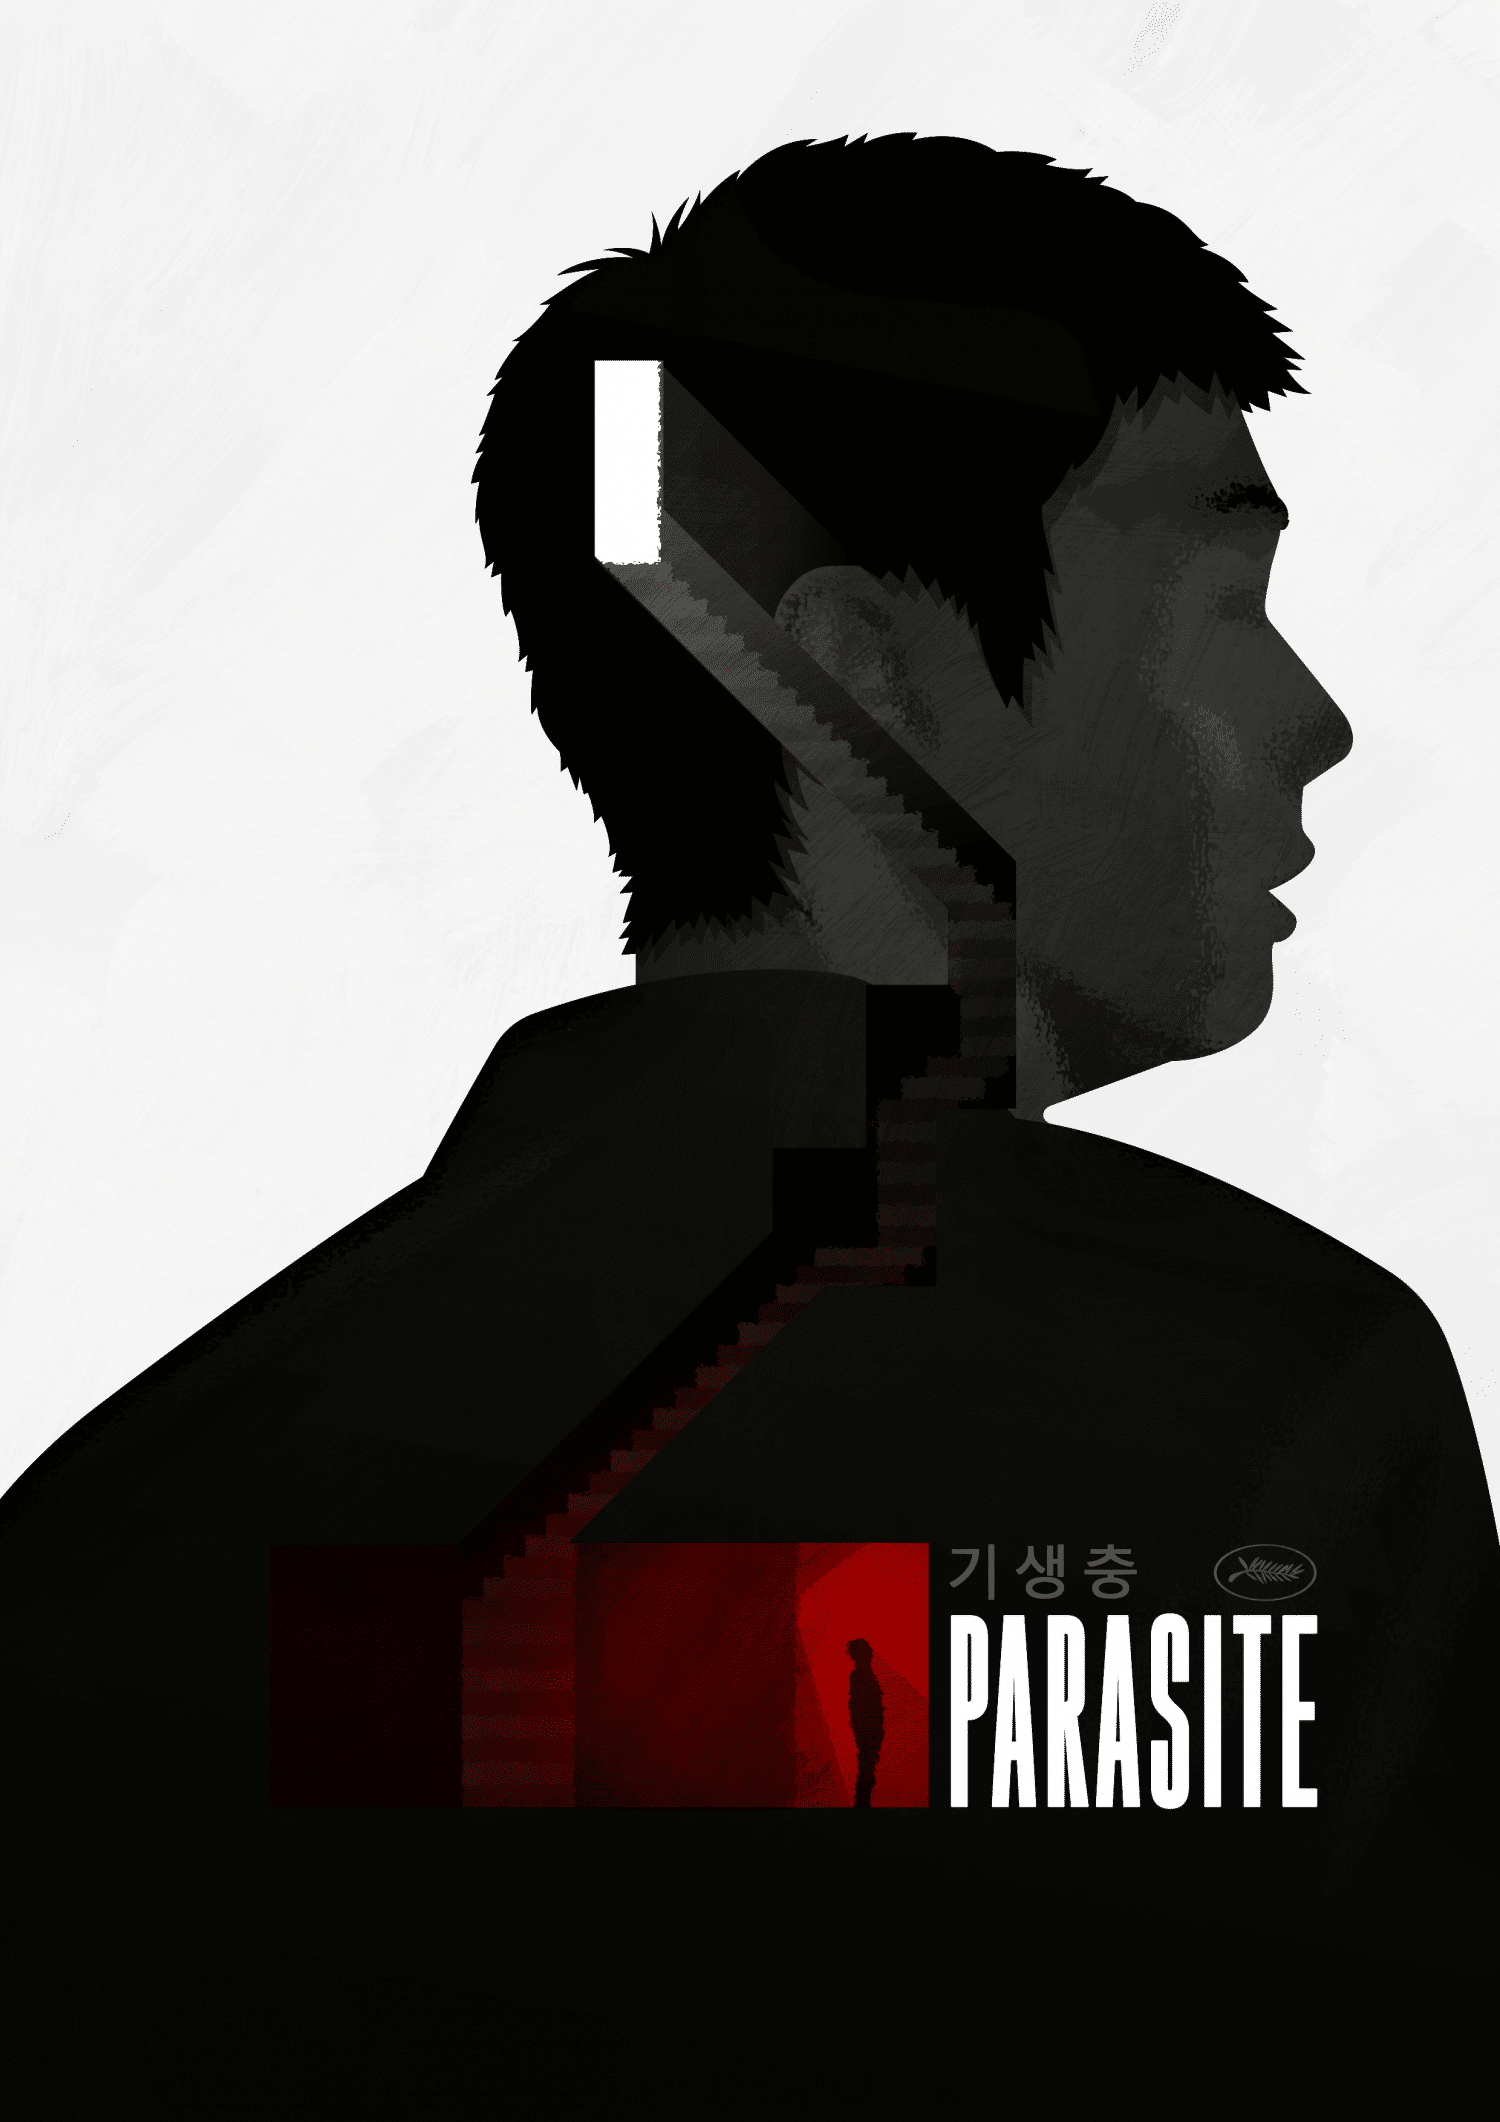 Affiche de film de parasite Tribute Art